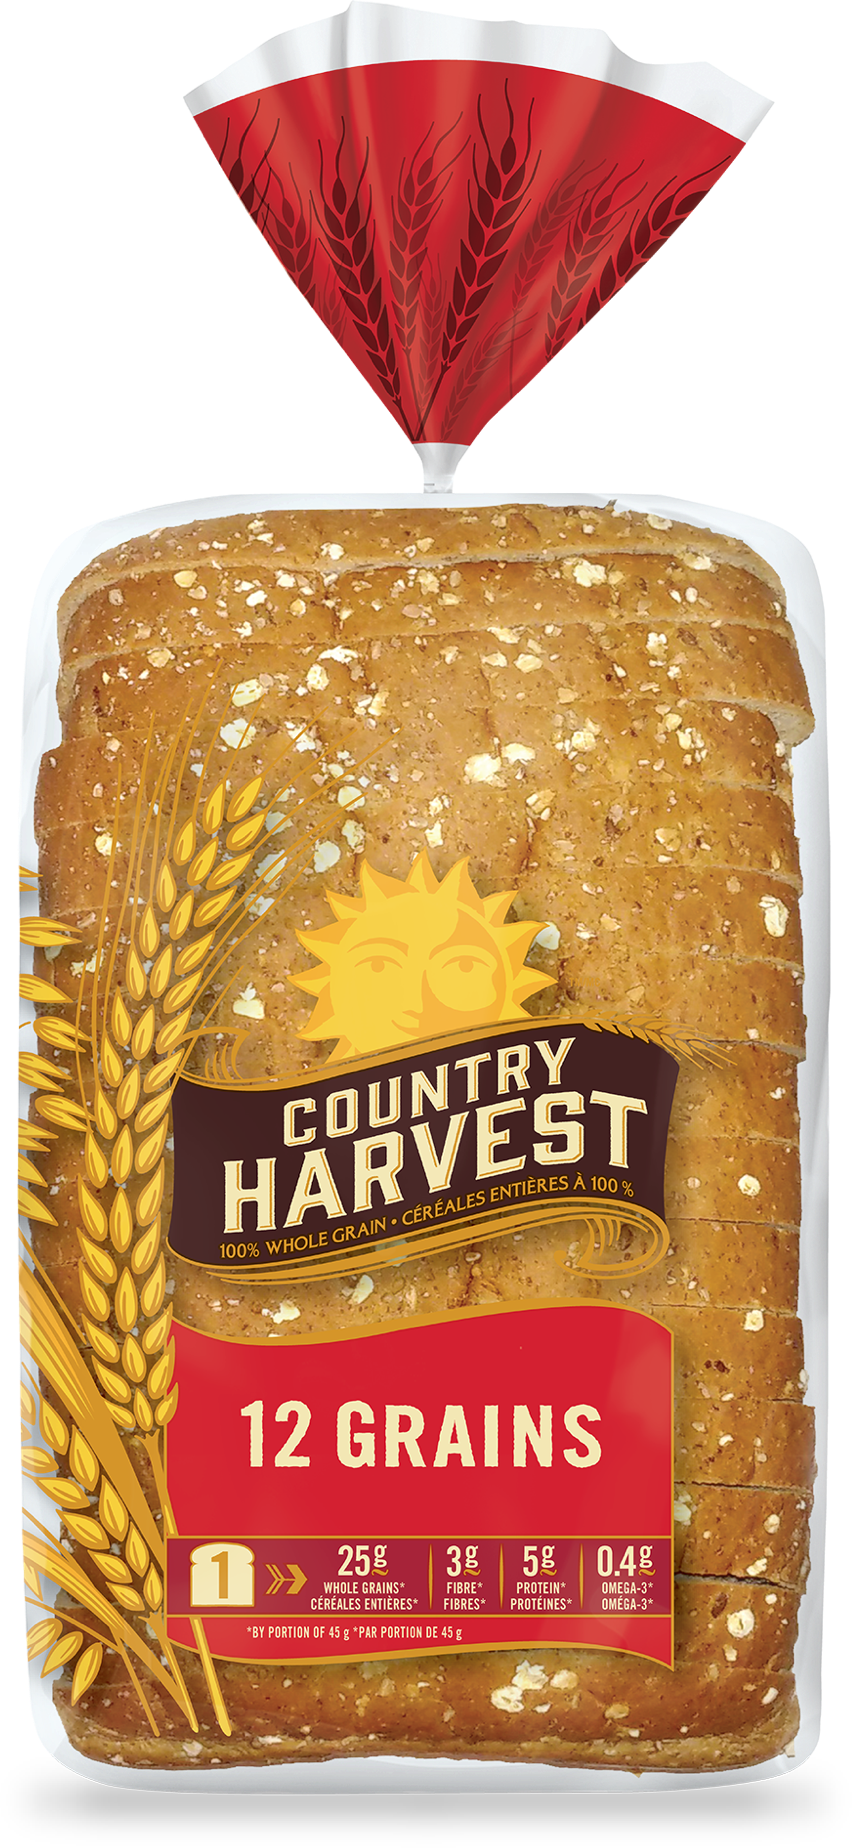 grains country harvest. Wheat clipart cartoon